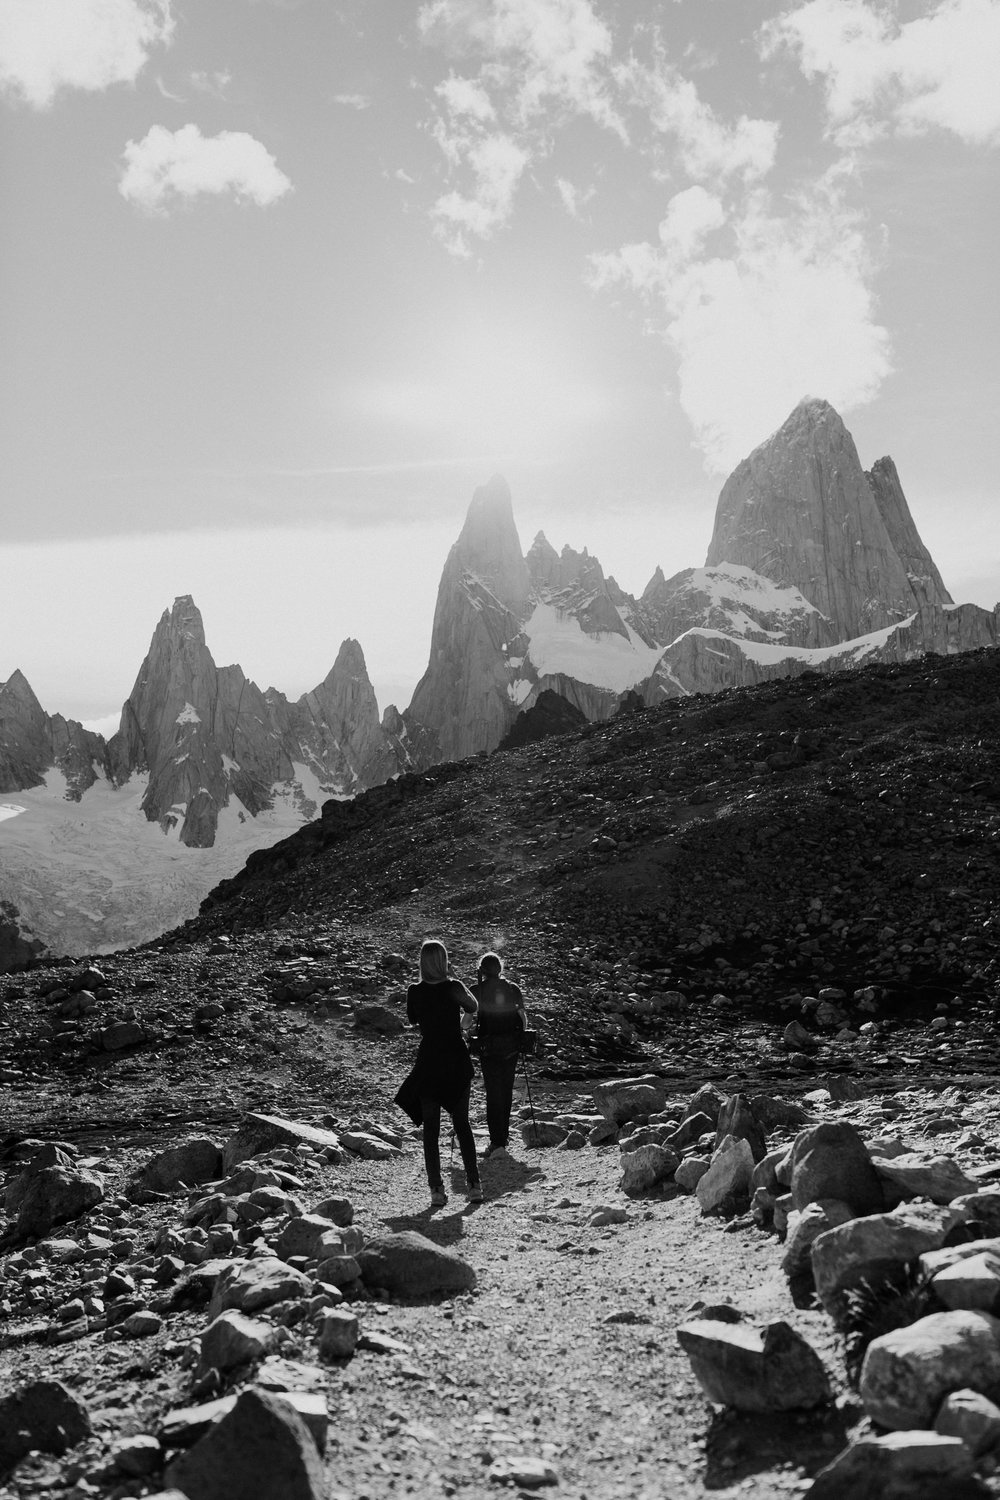 patagonia-adventure-photographer-103.jpg